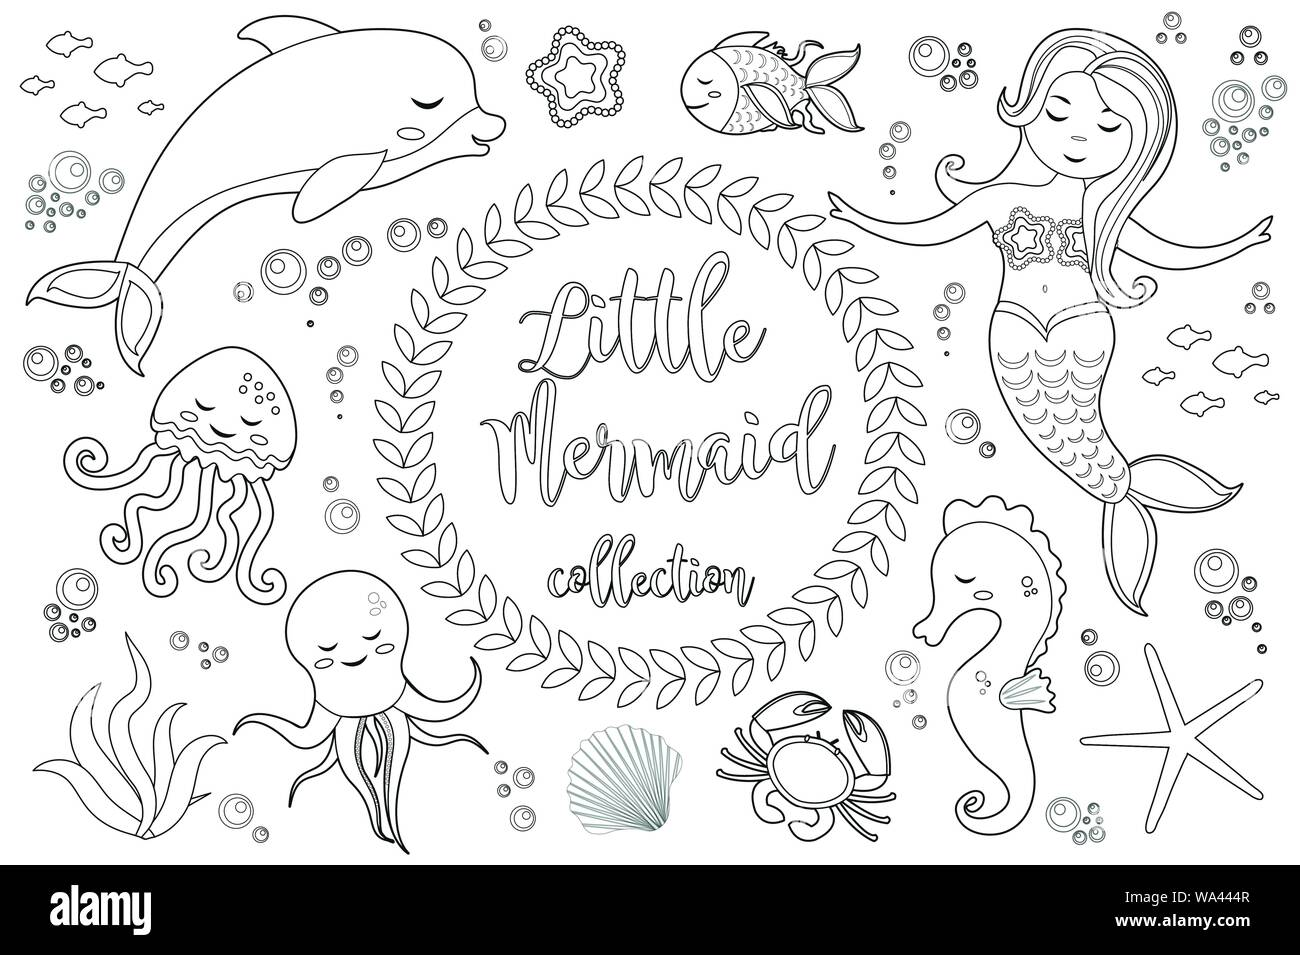 Cuttlefish With High Details. Adult Antistress Coloring Page ... | 955x1300